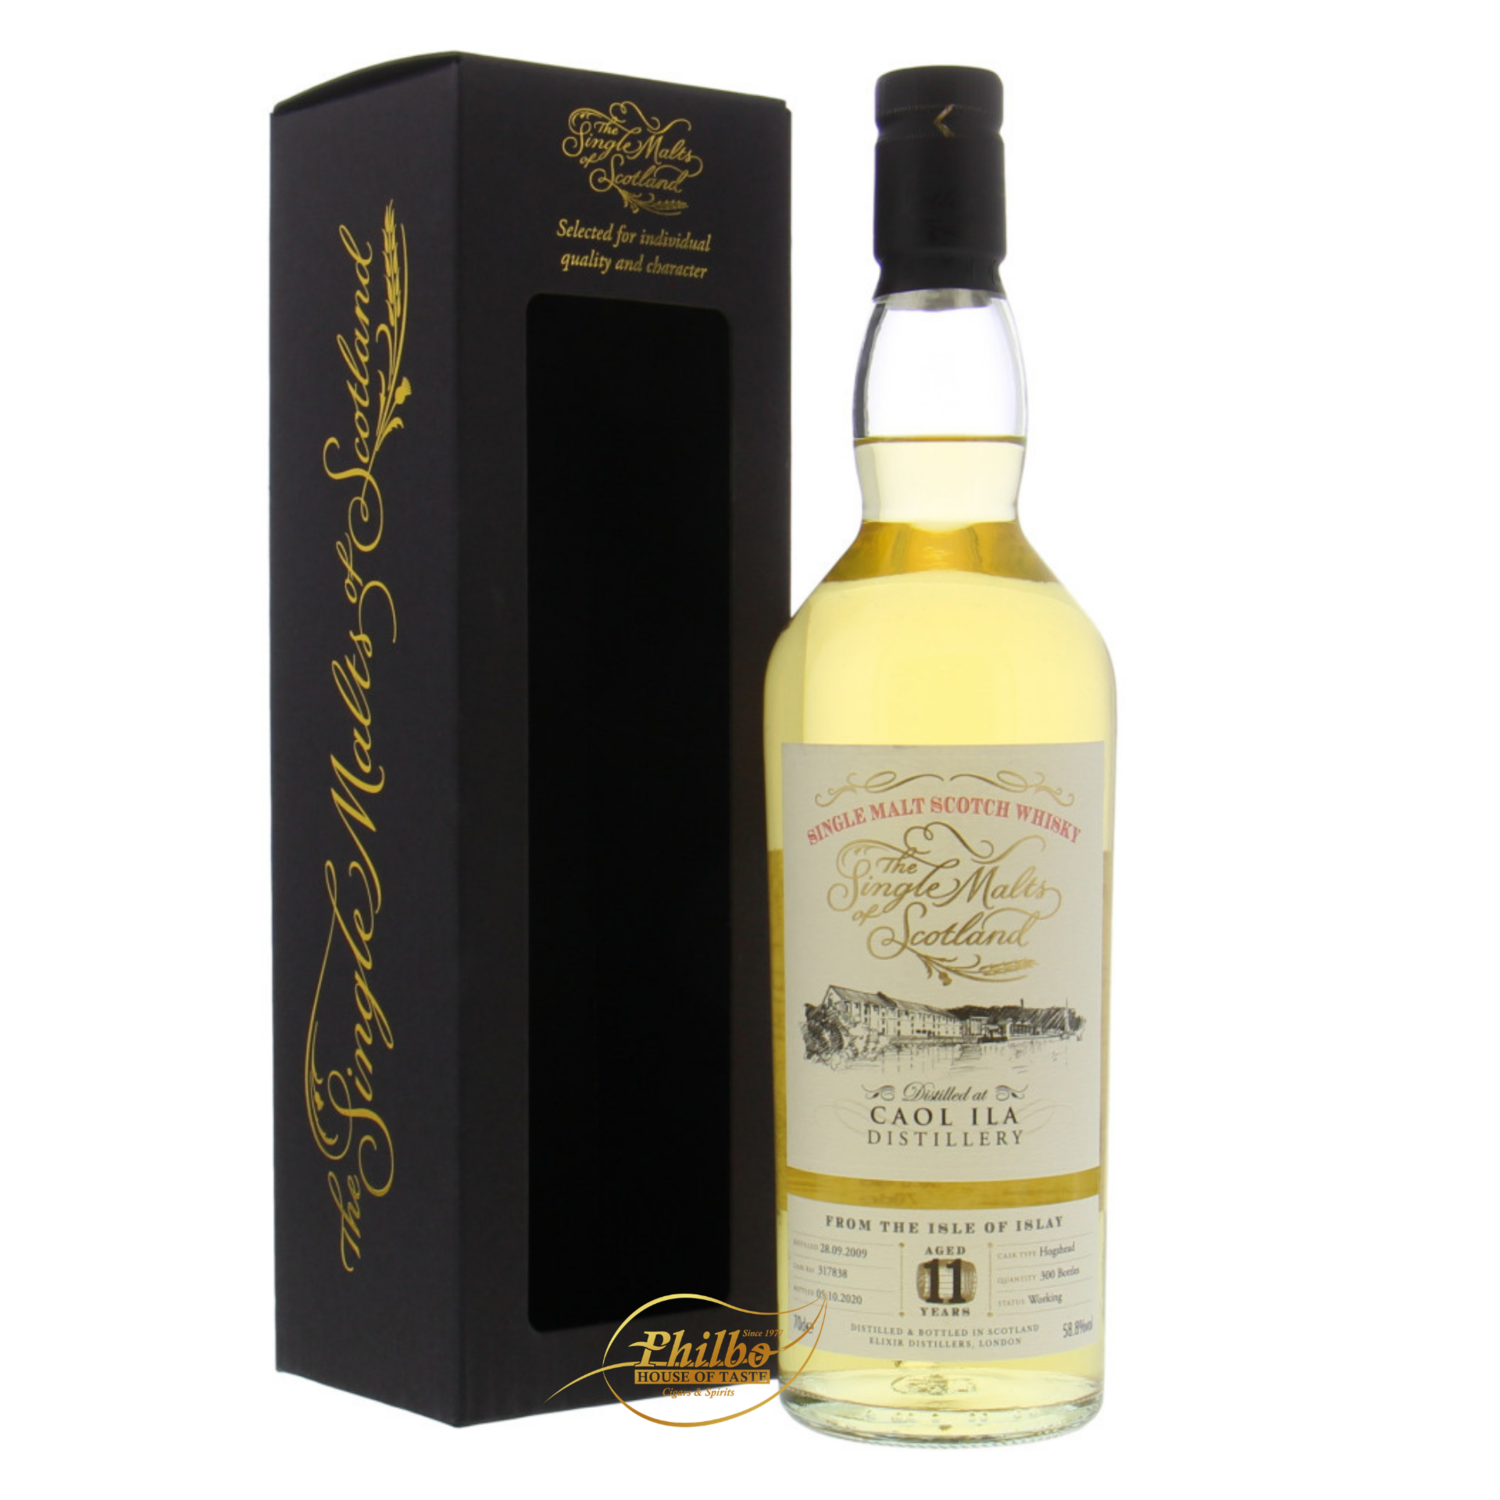 Caol Ila 11y 2009 The Single Malts of Scotland cask 317838 - 58.8% - 70cl